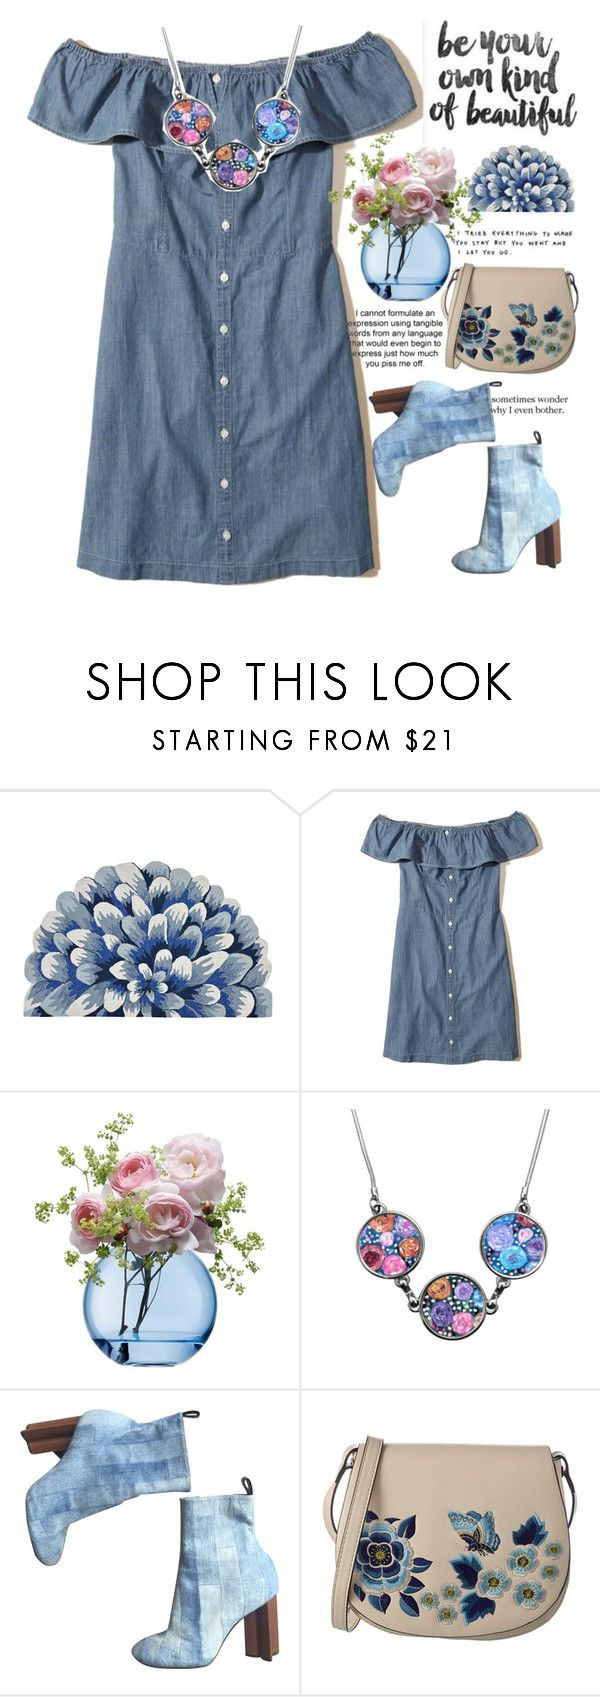 """""""194"""" by erohina-d ❤ liked on Polyvore featuring Hollister Co., LSA International, Louis Vuitton and French Connection"""